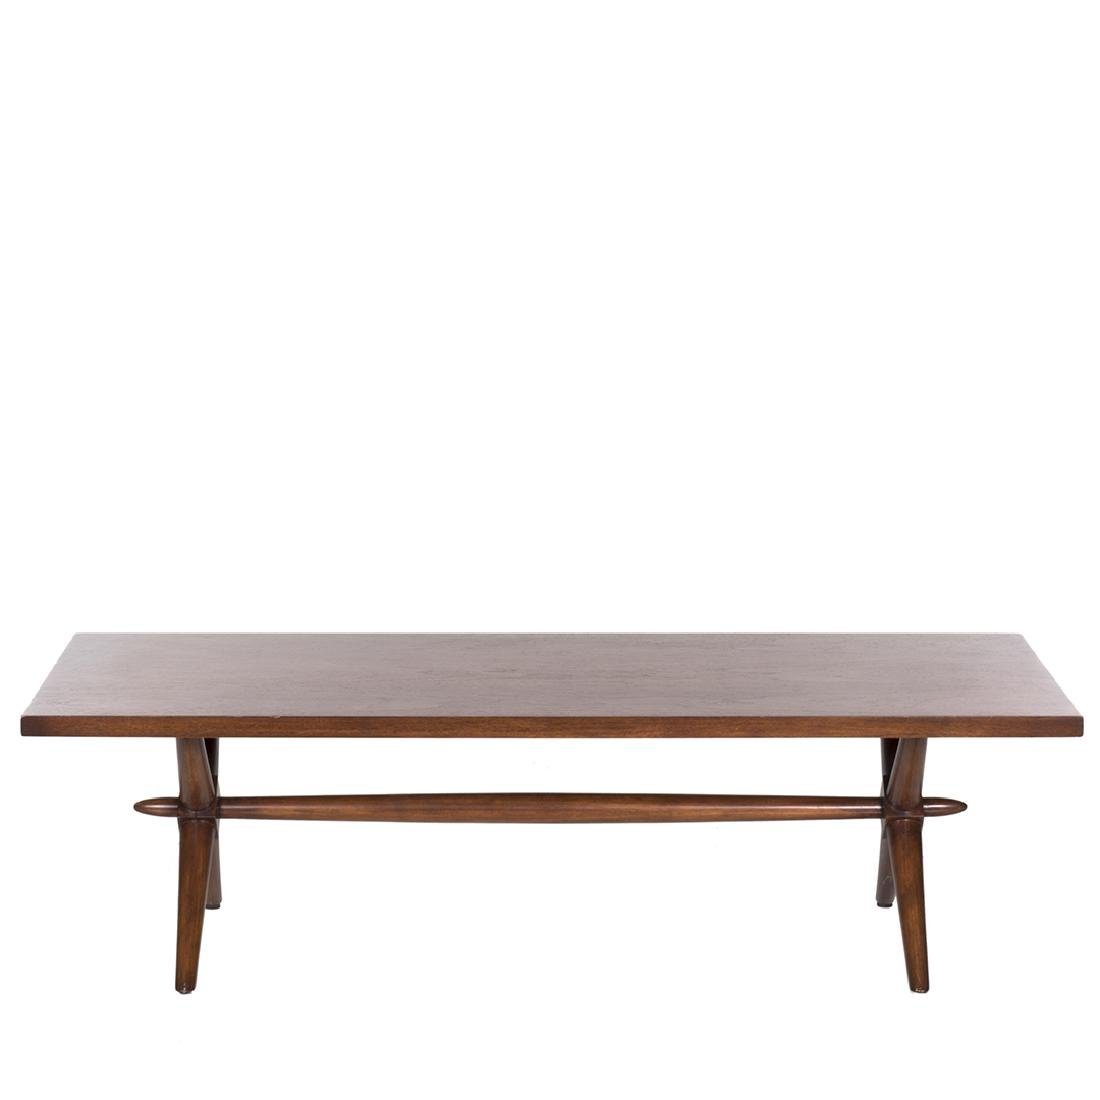 T.H. Robsjohn-Gibbings Coffee Table - 2